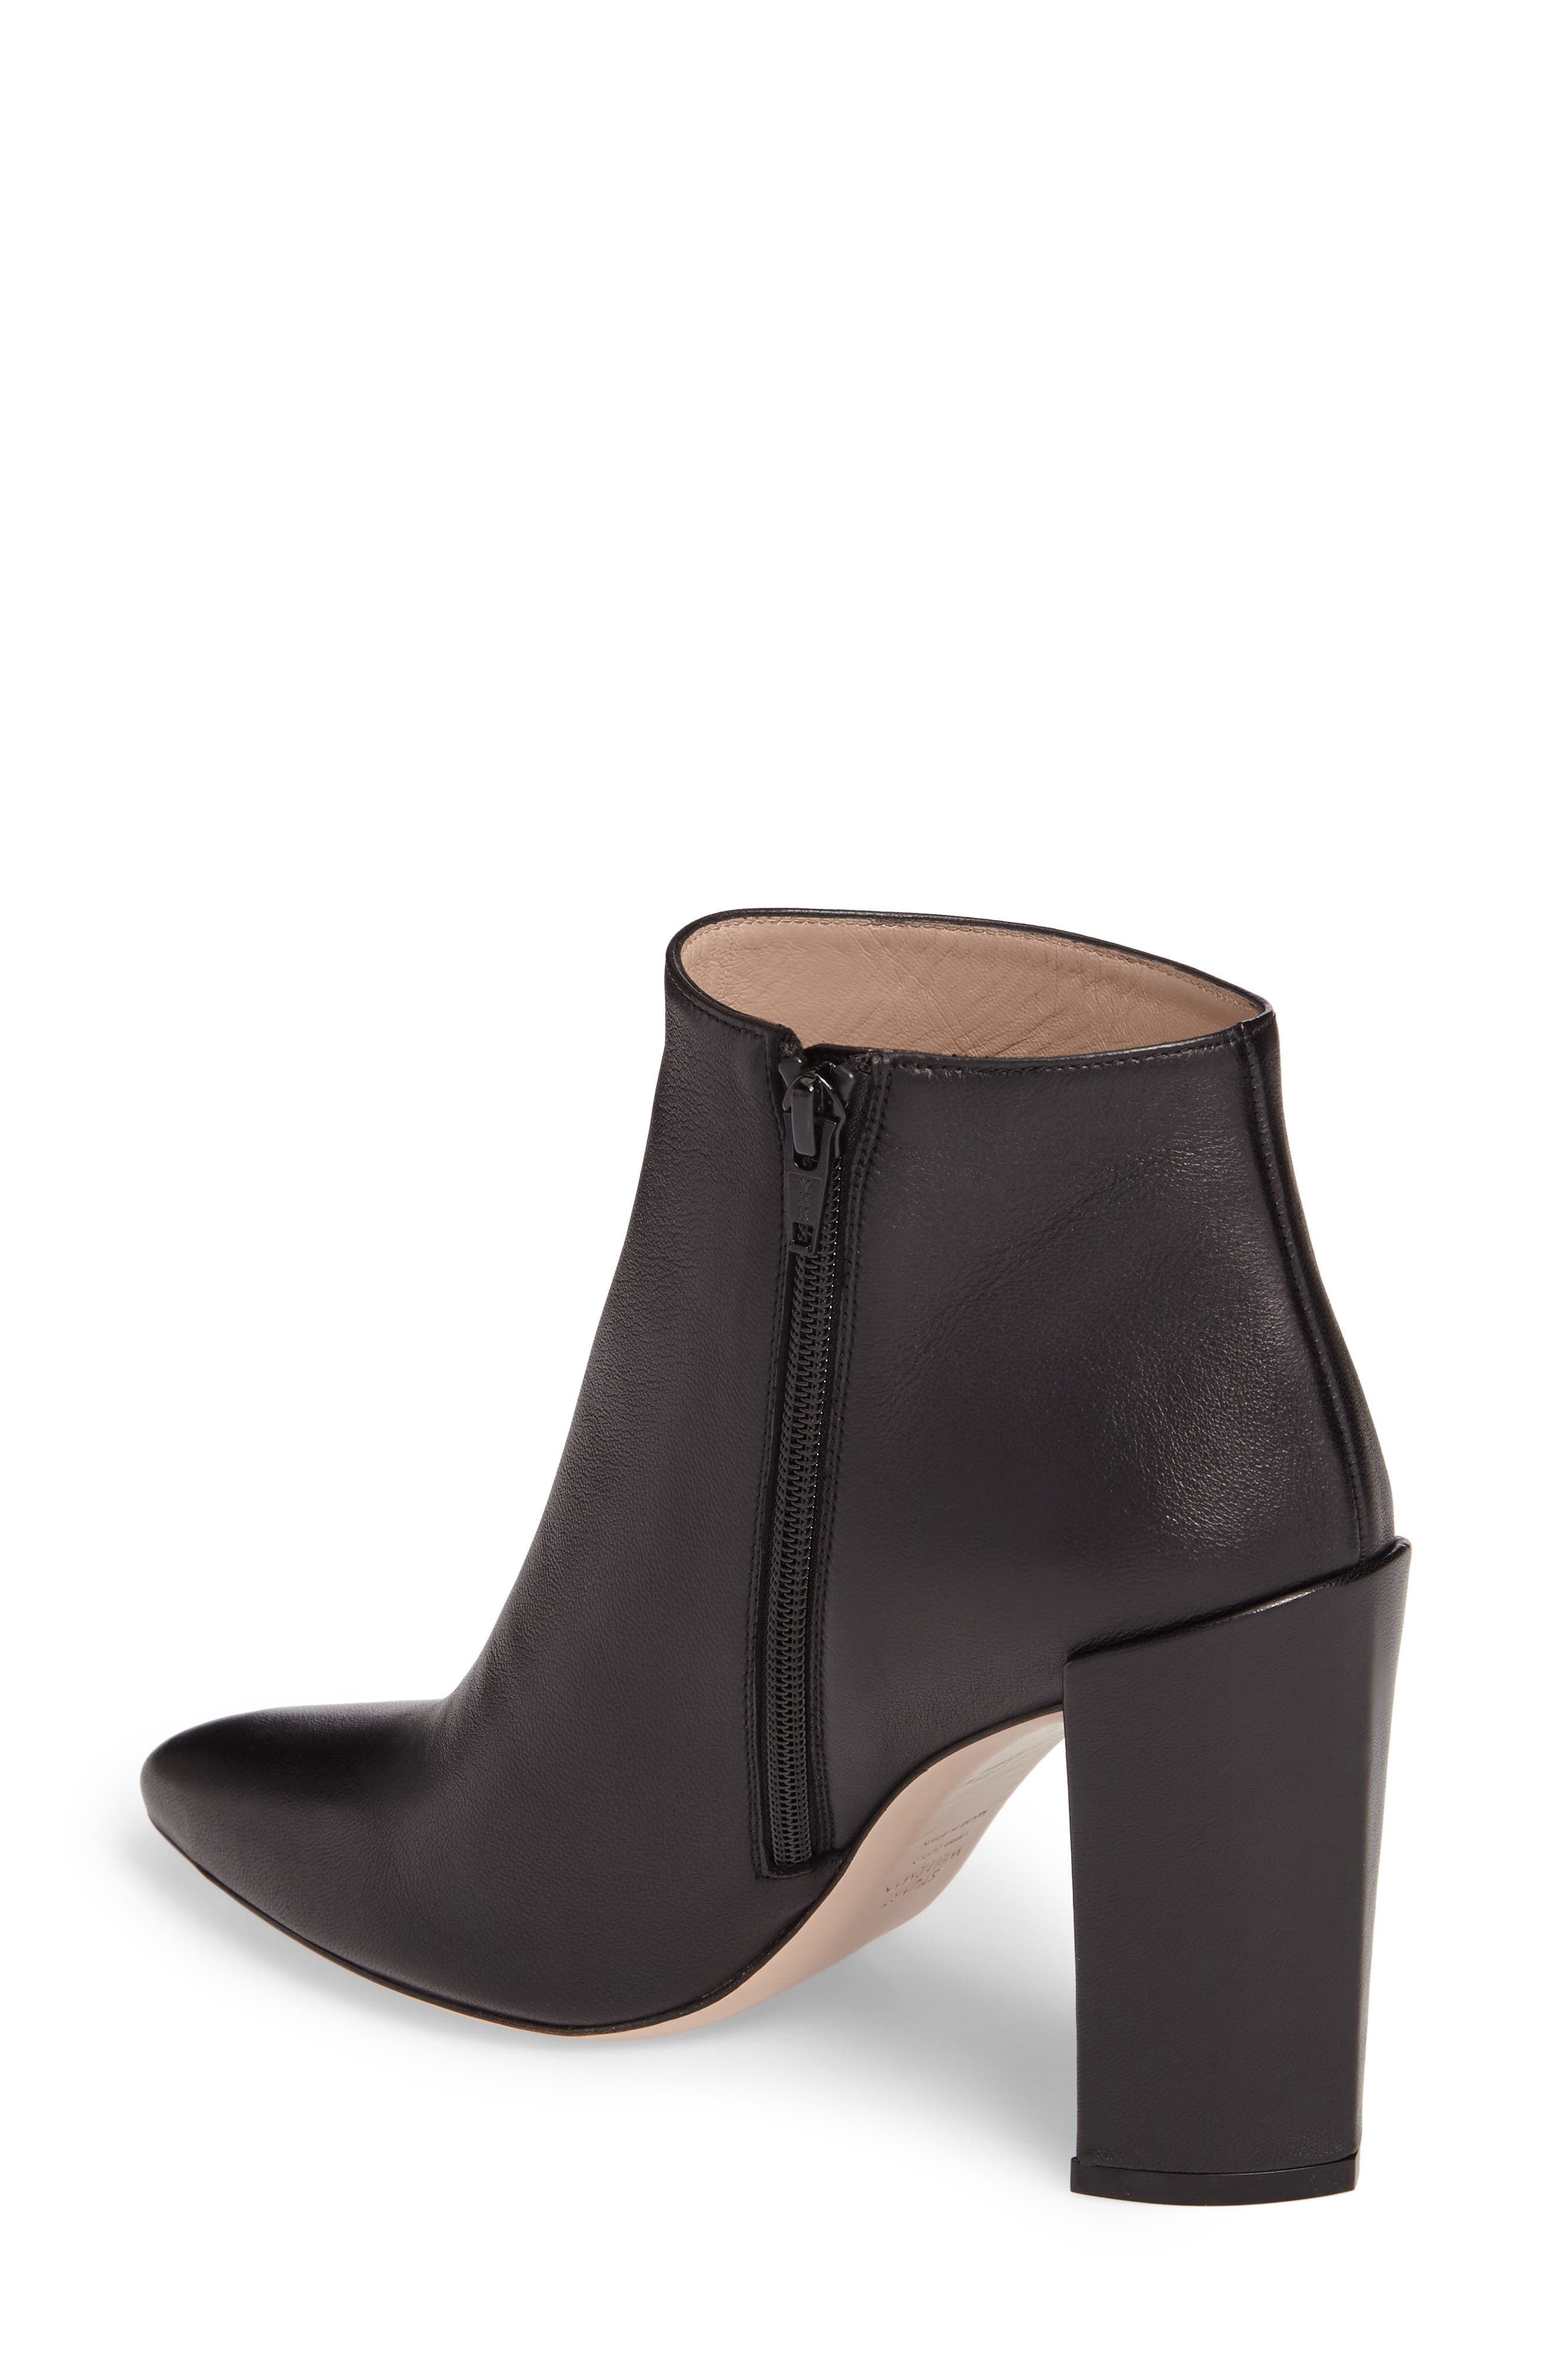 Pure Pointy Toe Bootie,                             Alternate thumbnail 2, color,                             Black Nappa